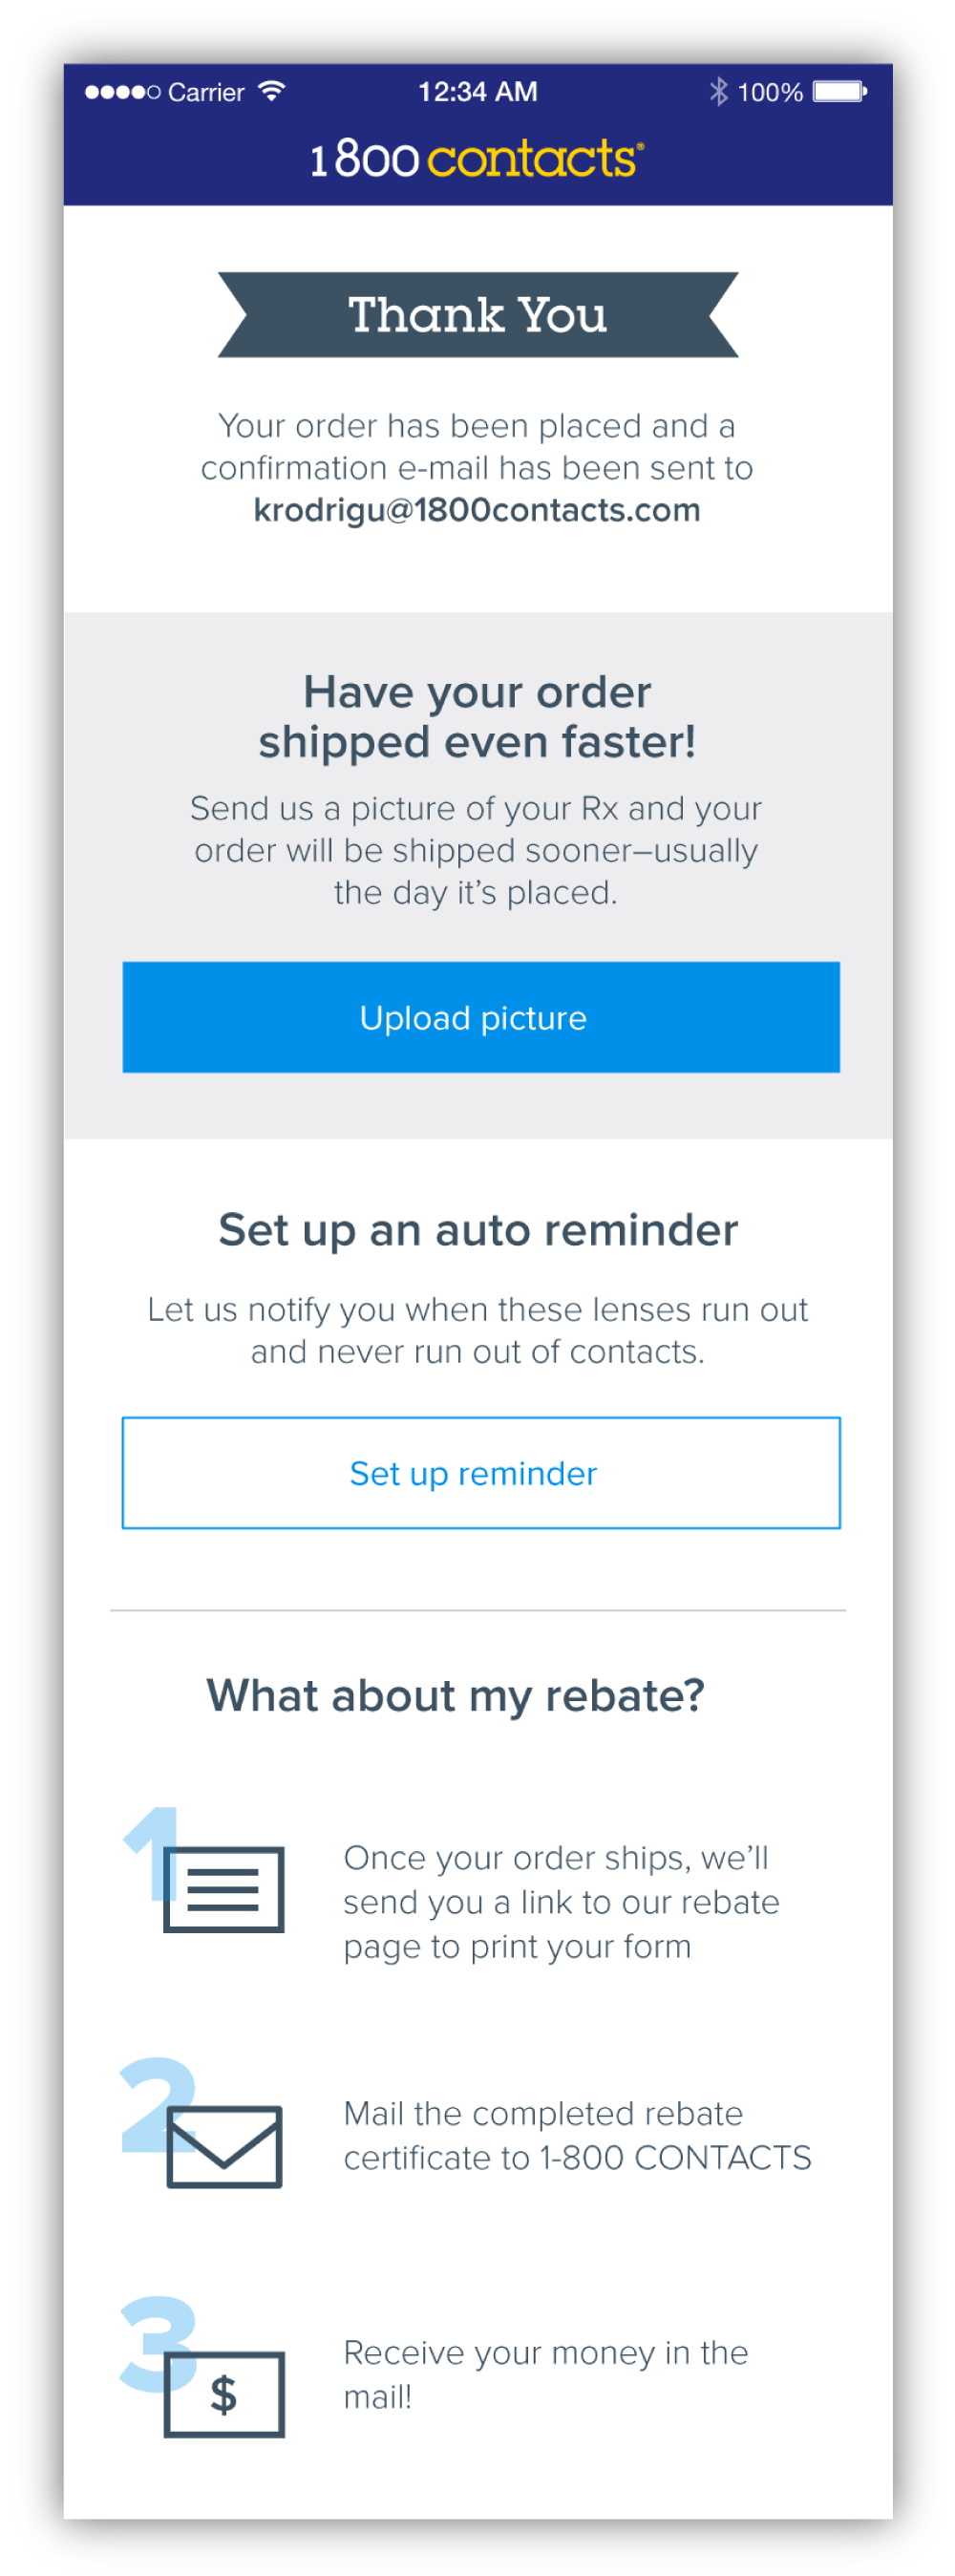 """The Thank You page was divided up so that the content would be easier to consume. I also added the """"What about my rebate?"""" section so that users wouldn't be left in the dark as to what to do concerning their rebate."""